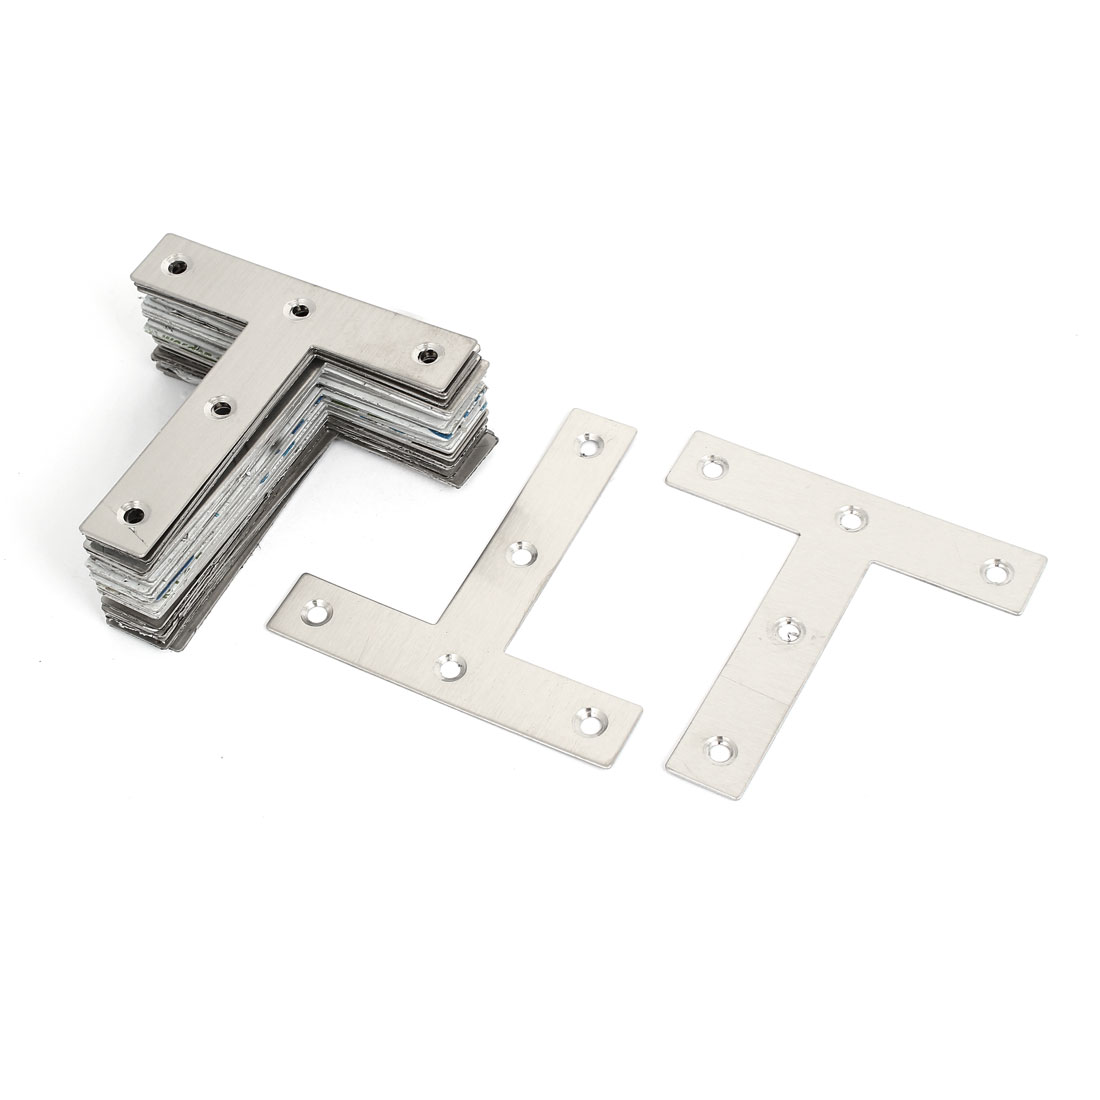 30 Pcs 80mmx80mmx16mm Metal T Shaped Flat Plate Corner Brace Angle Brackets